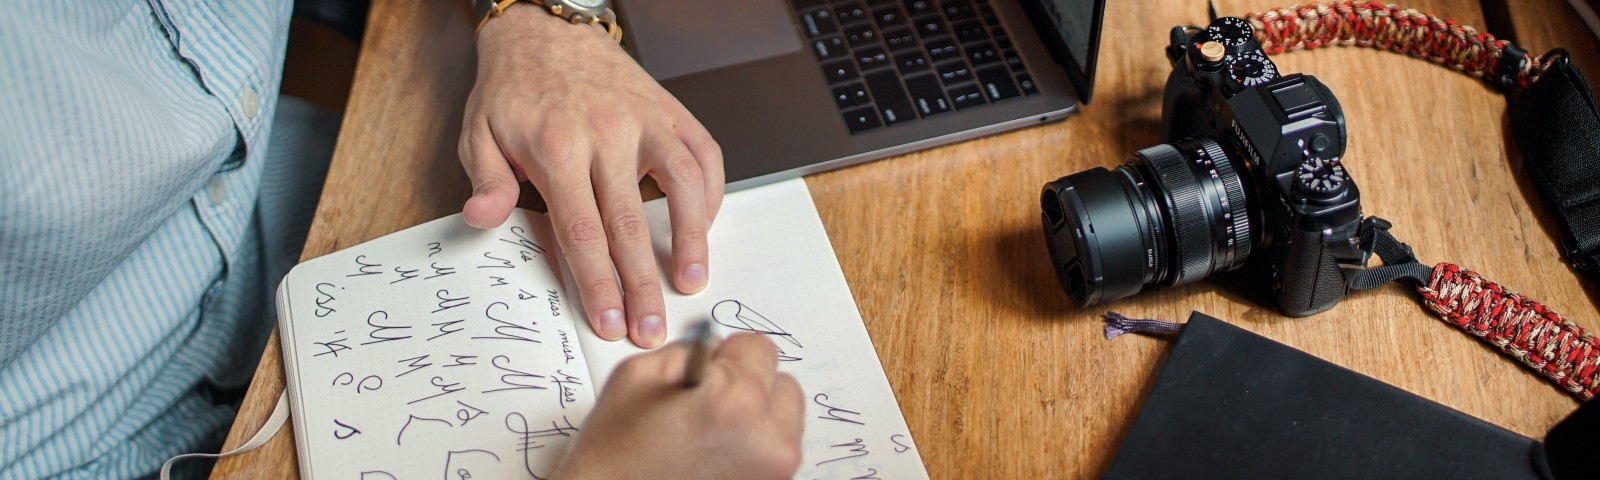 man writing on paper in front of dslr camera